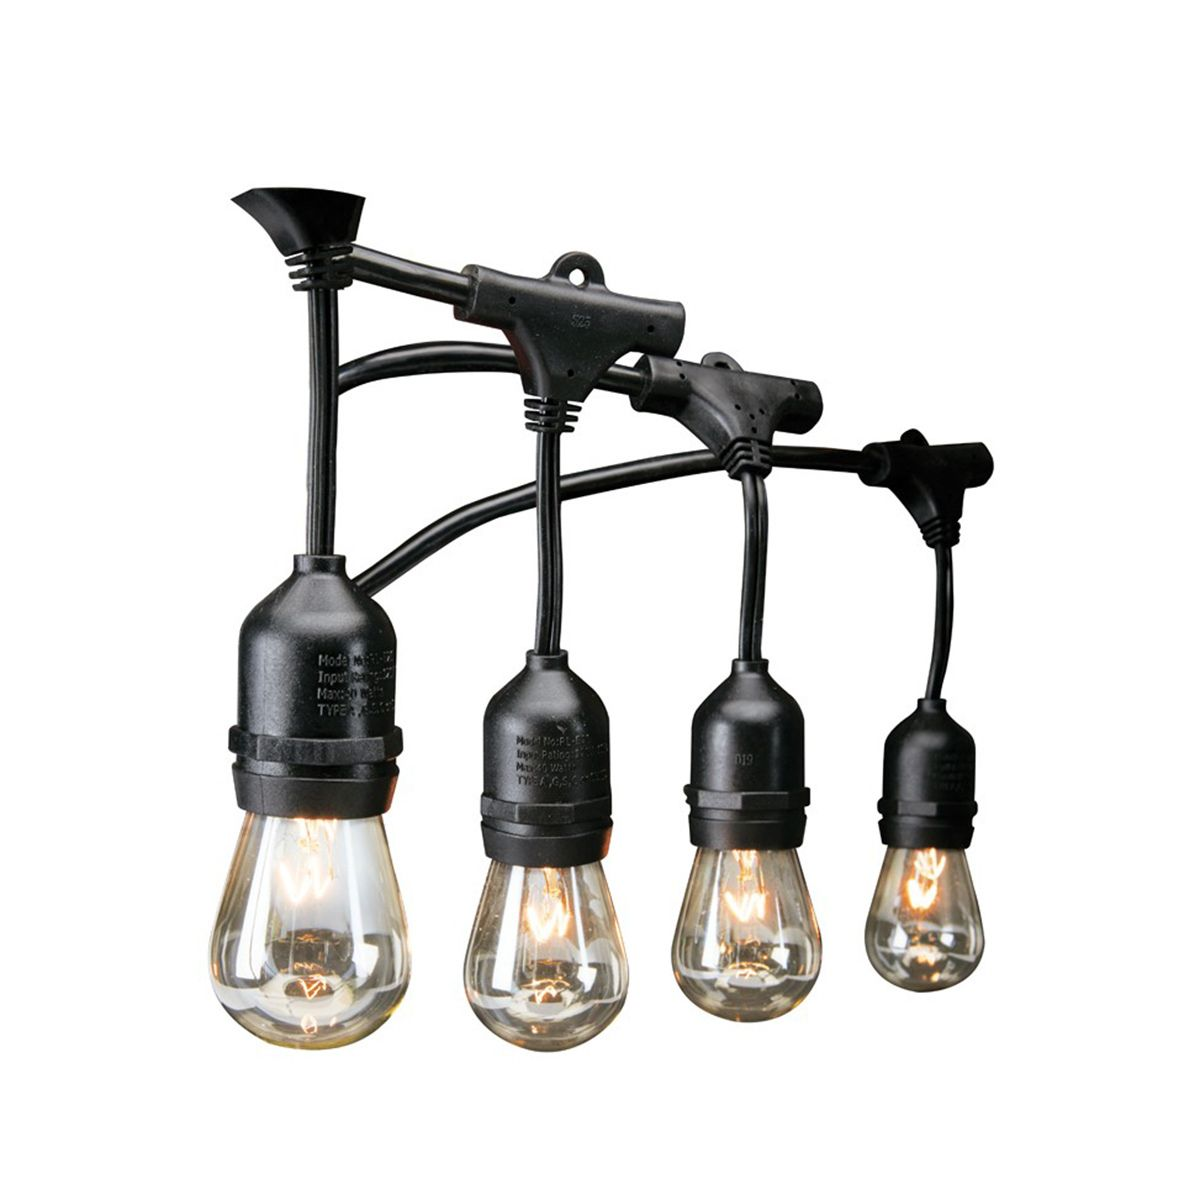 Patio Lights Harbor Freight: 20 Genius Camping Gear Items You Can Find At Harbor